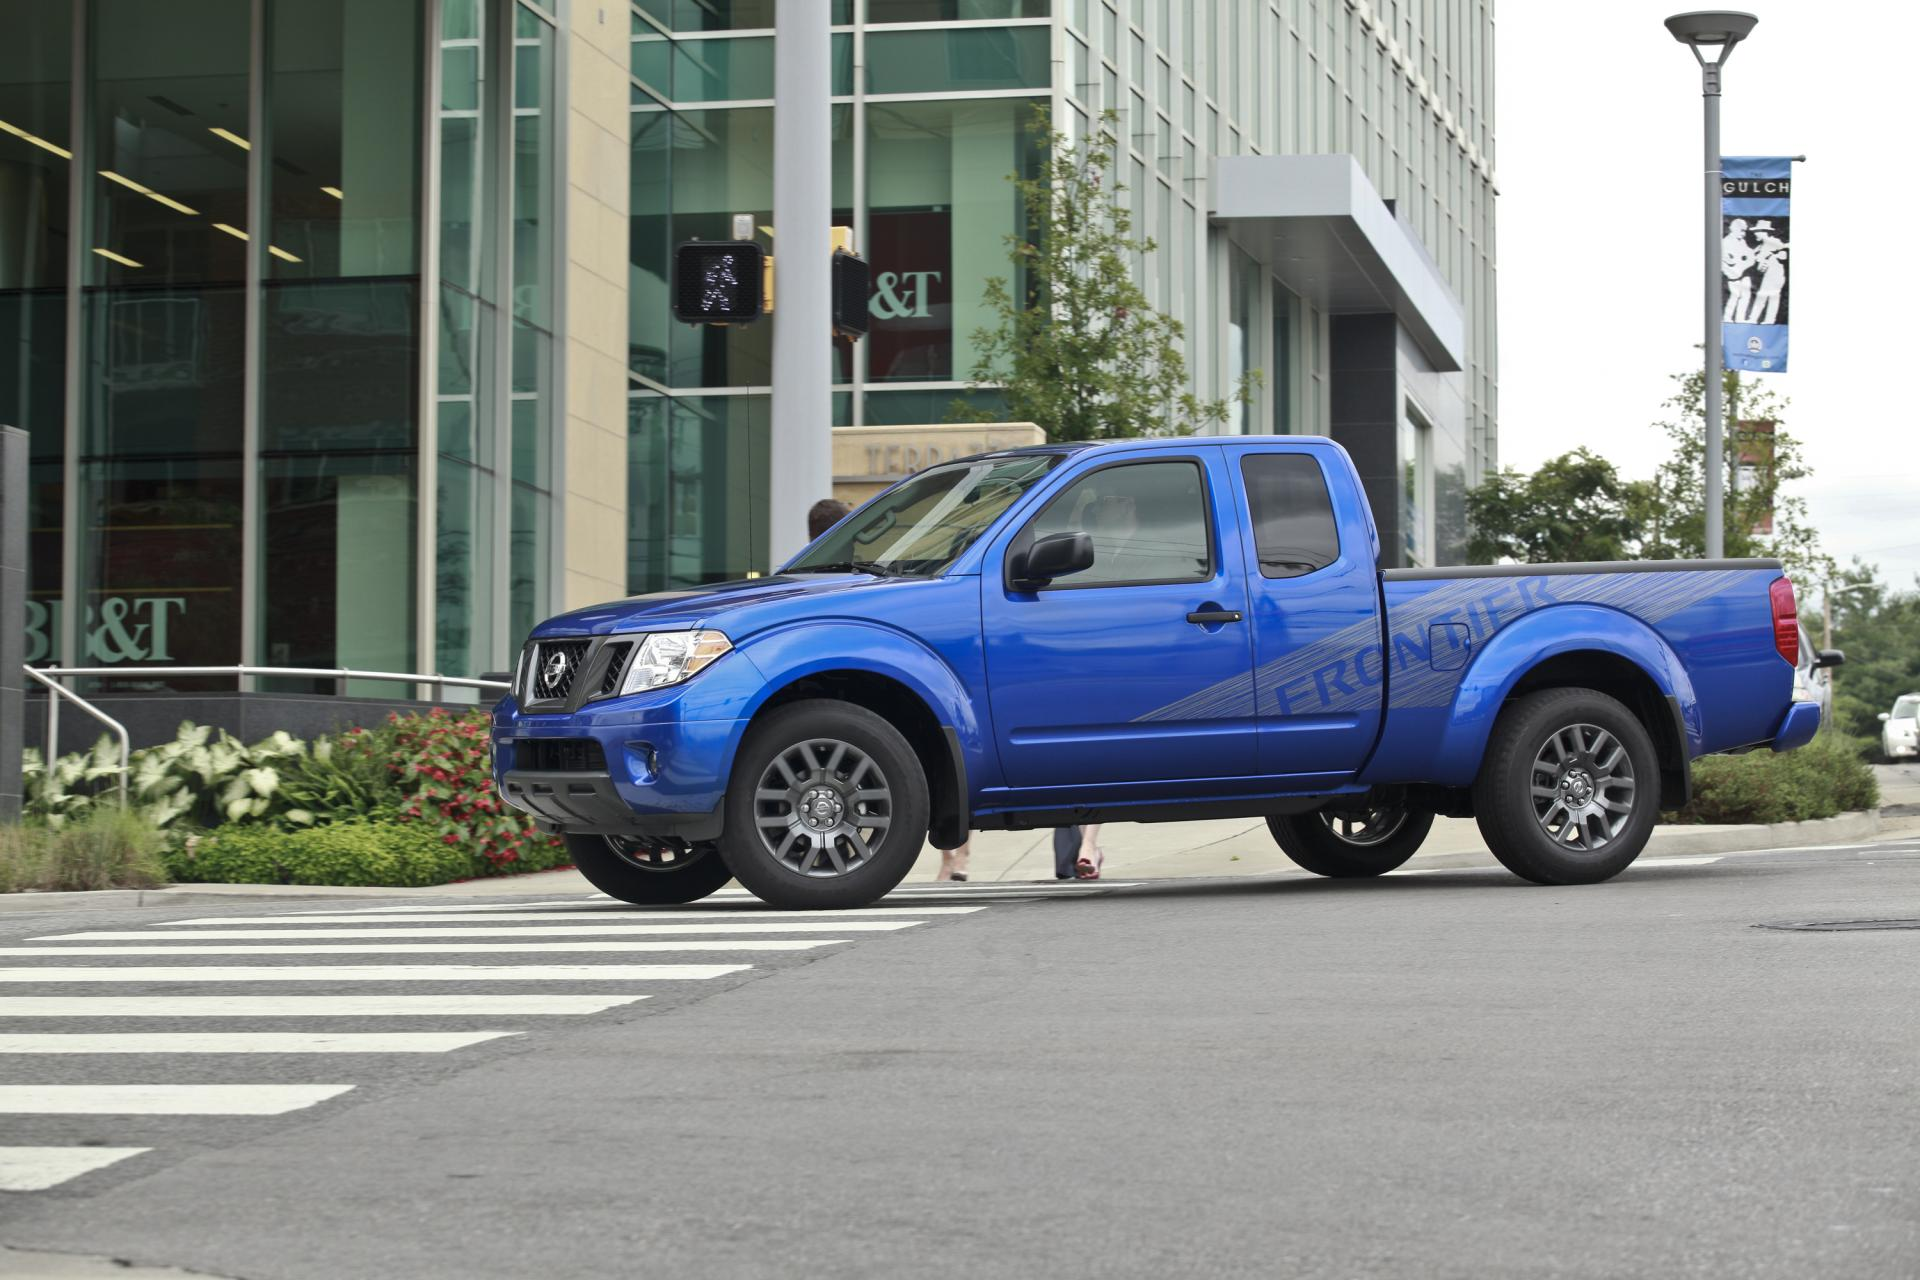 2012 Nissan Frontier News and Information - conceptcarz.com